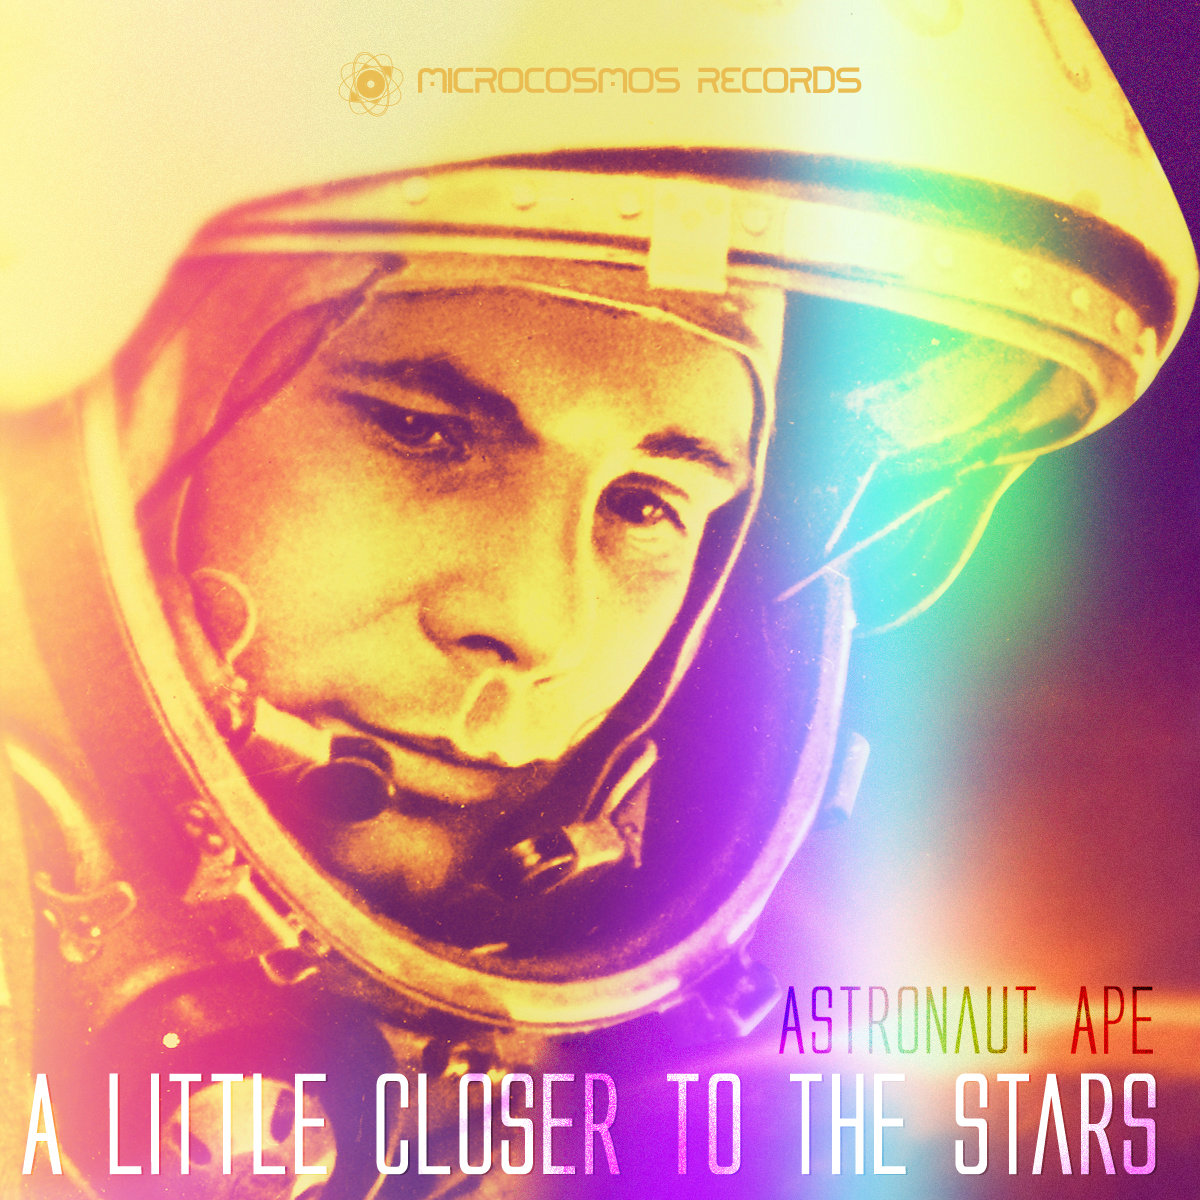 Astronaut Ape - Intro @ 'A Little Closer To The Stars' album (ambient, chill-out)